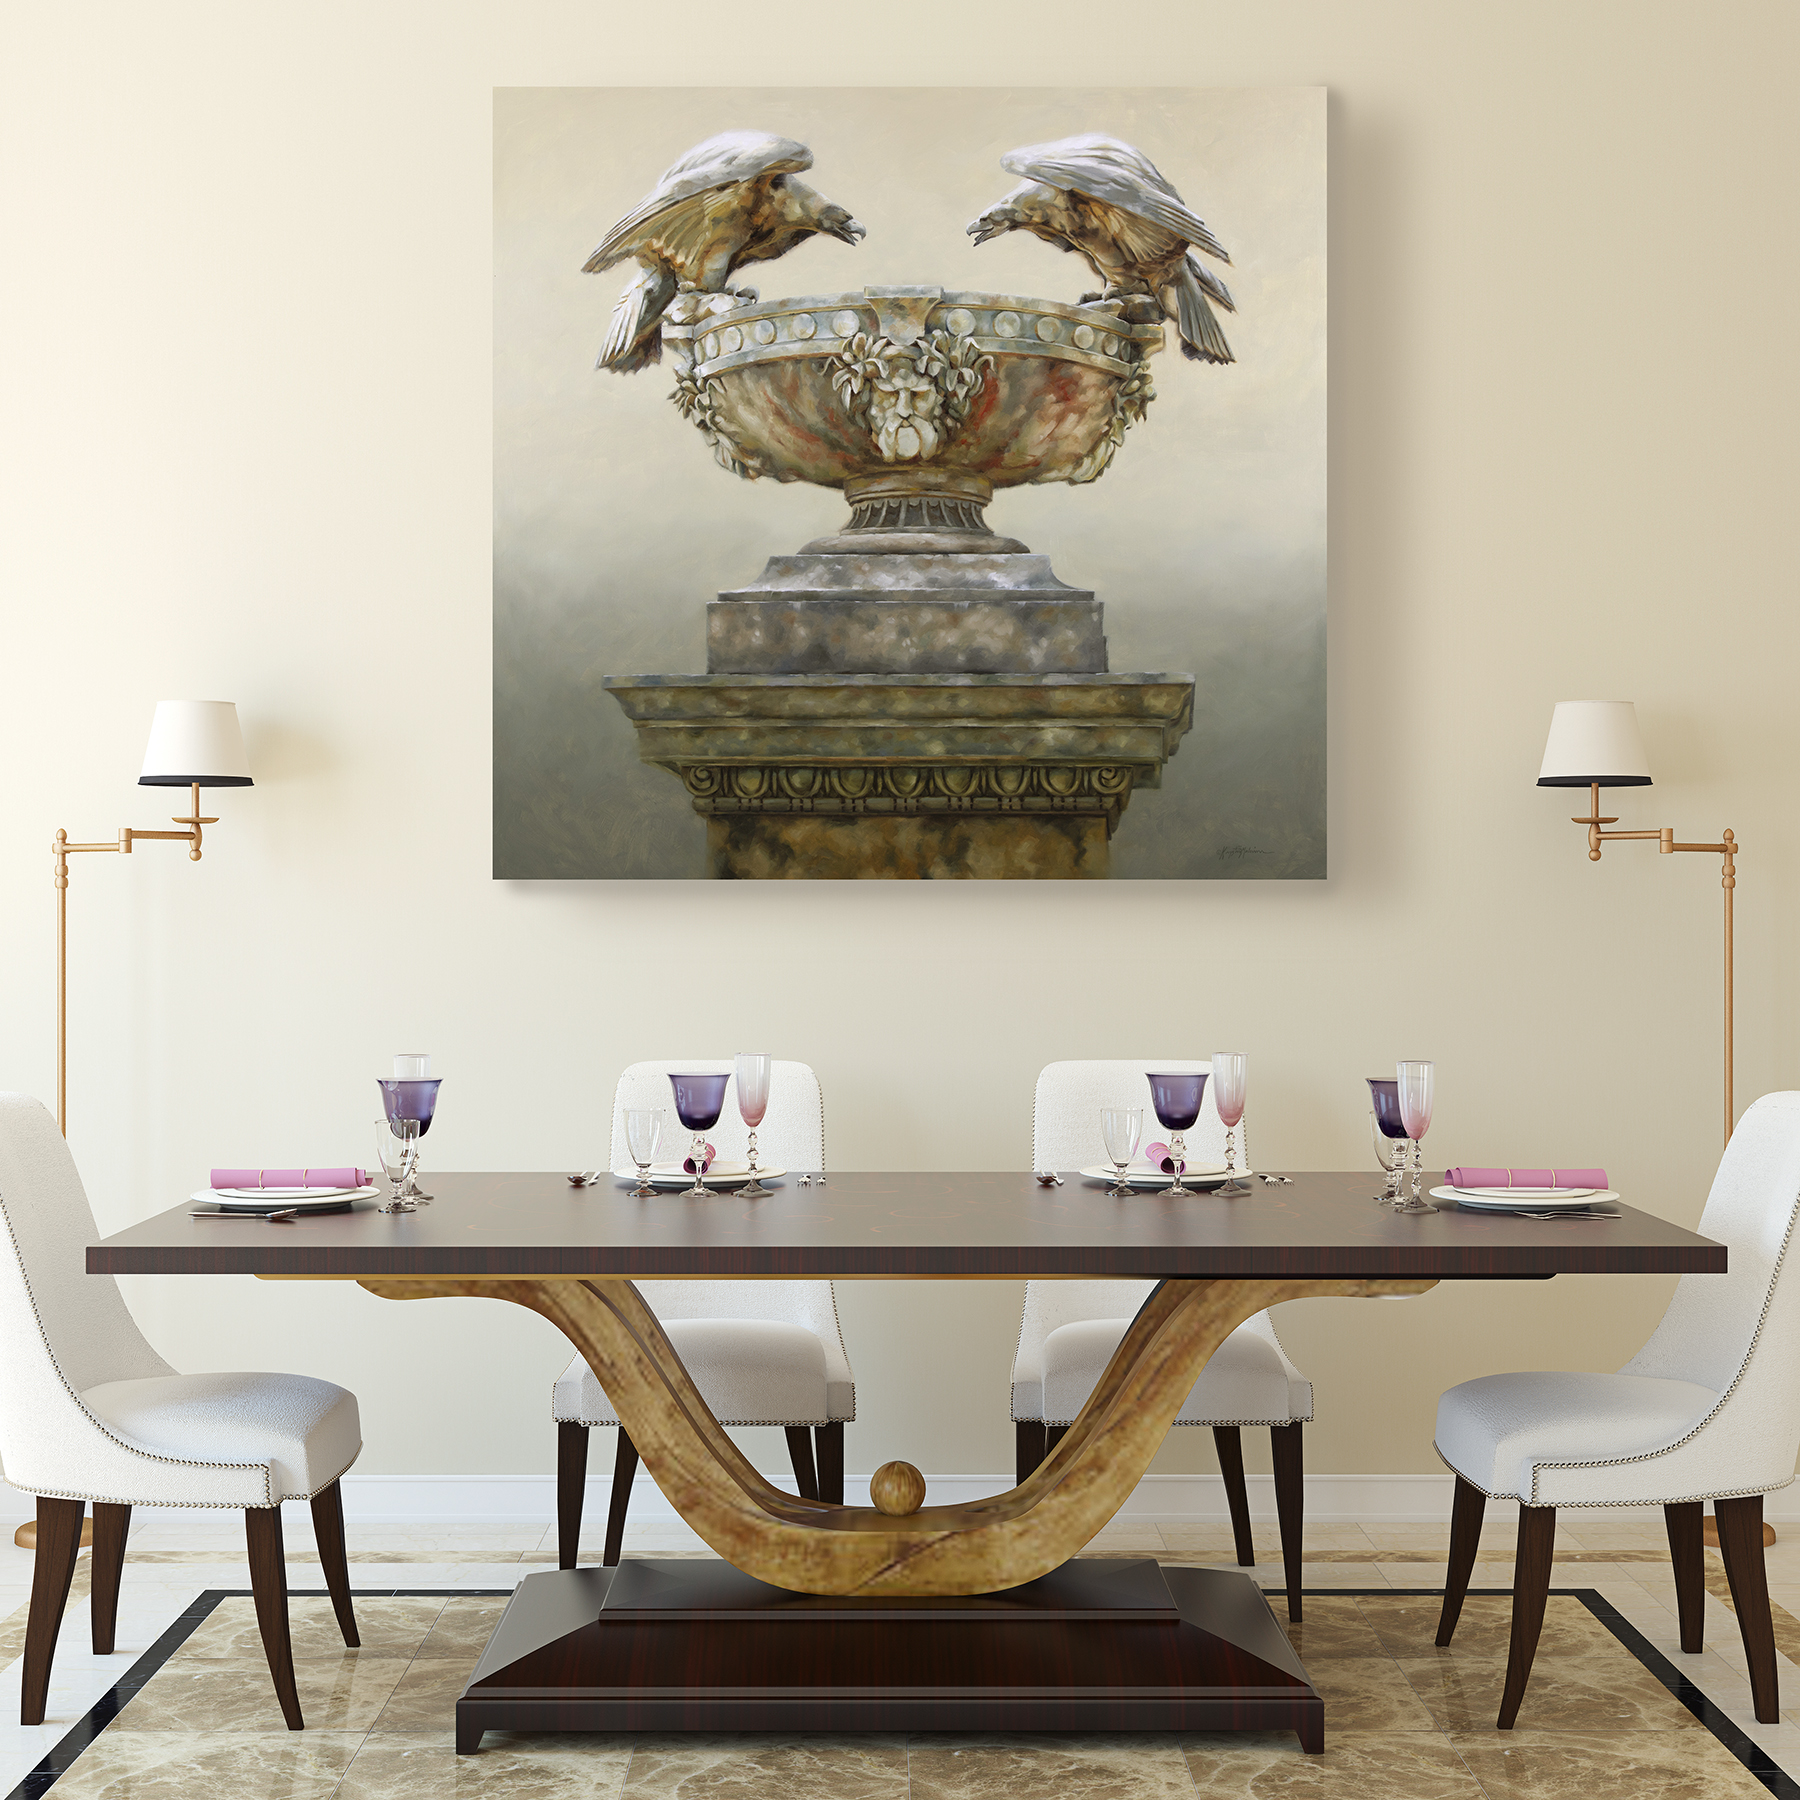 painting of carved stone eagles on an urn